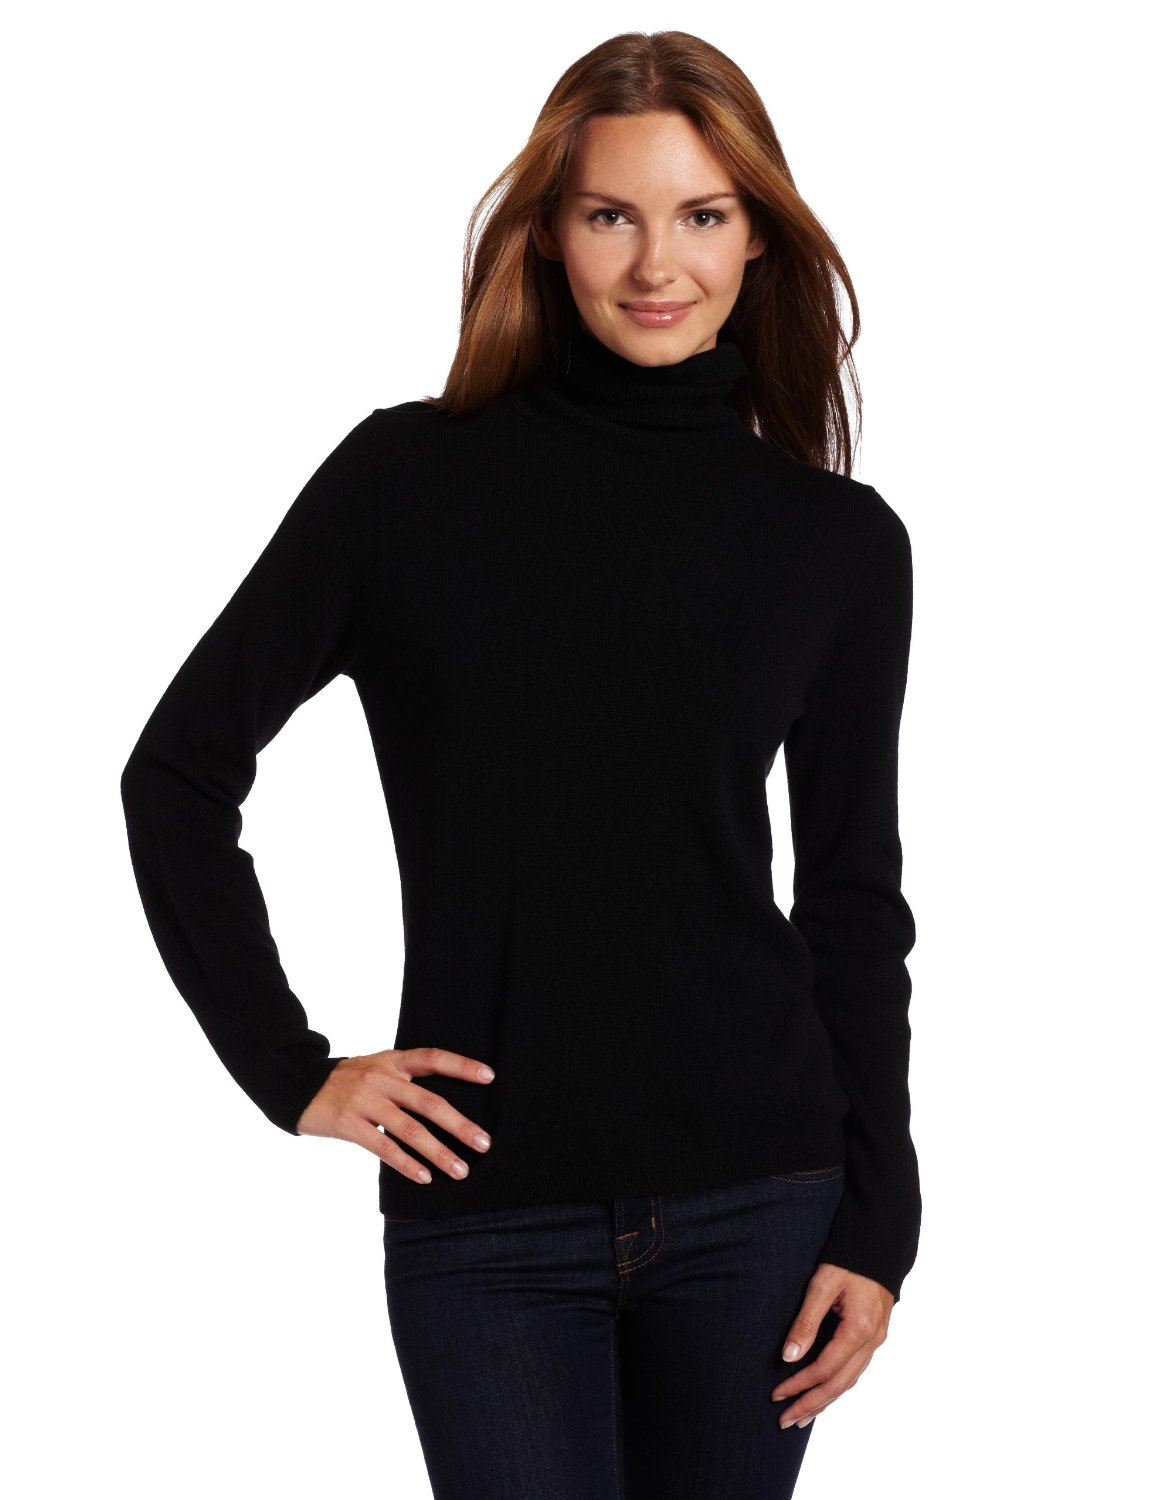 Shop for black turtleneck online at Target. Free shipping on purchases over $35 and save 5% every day with your Target REDcard.